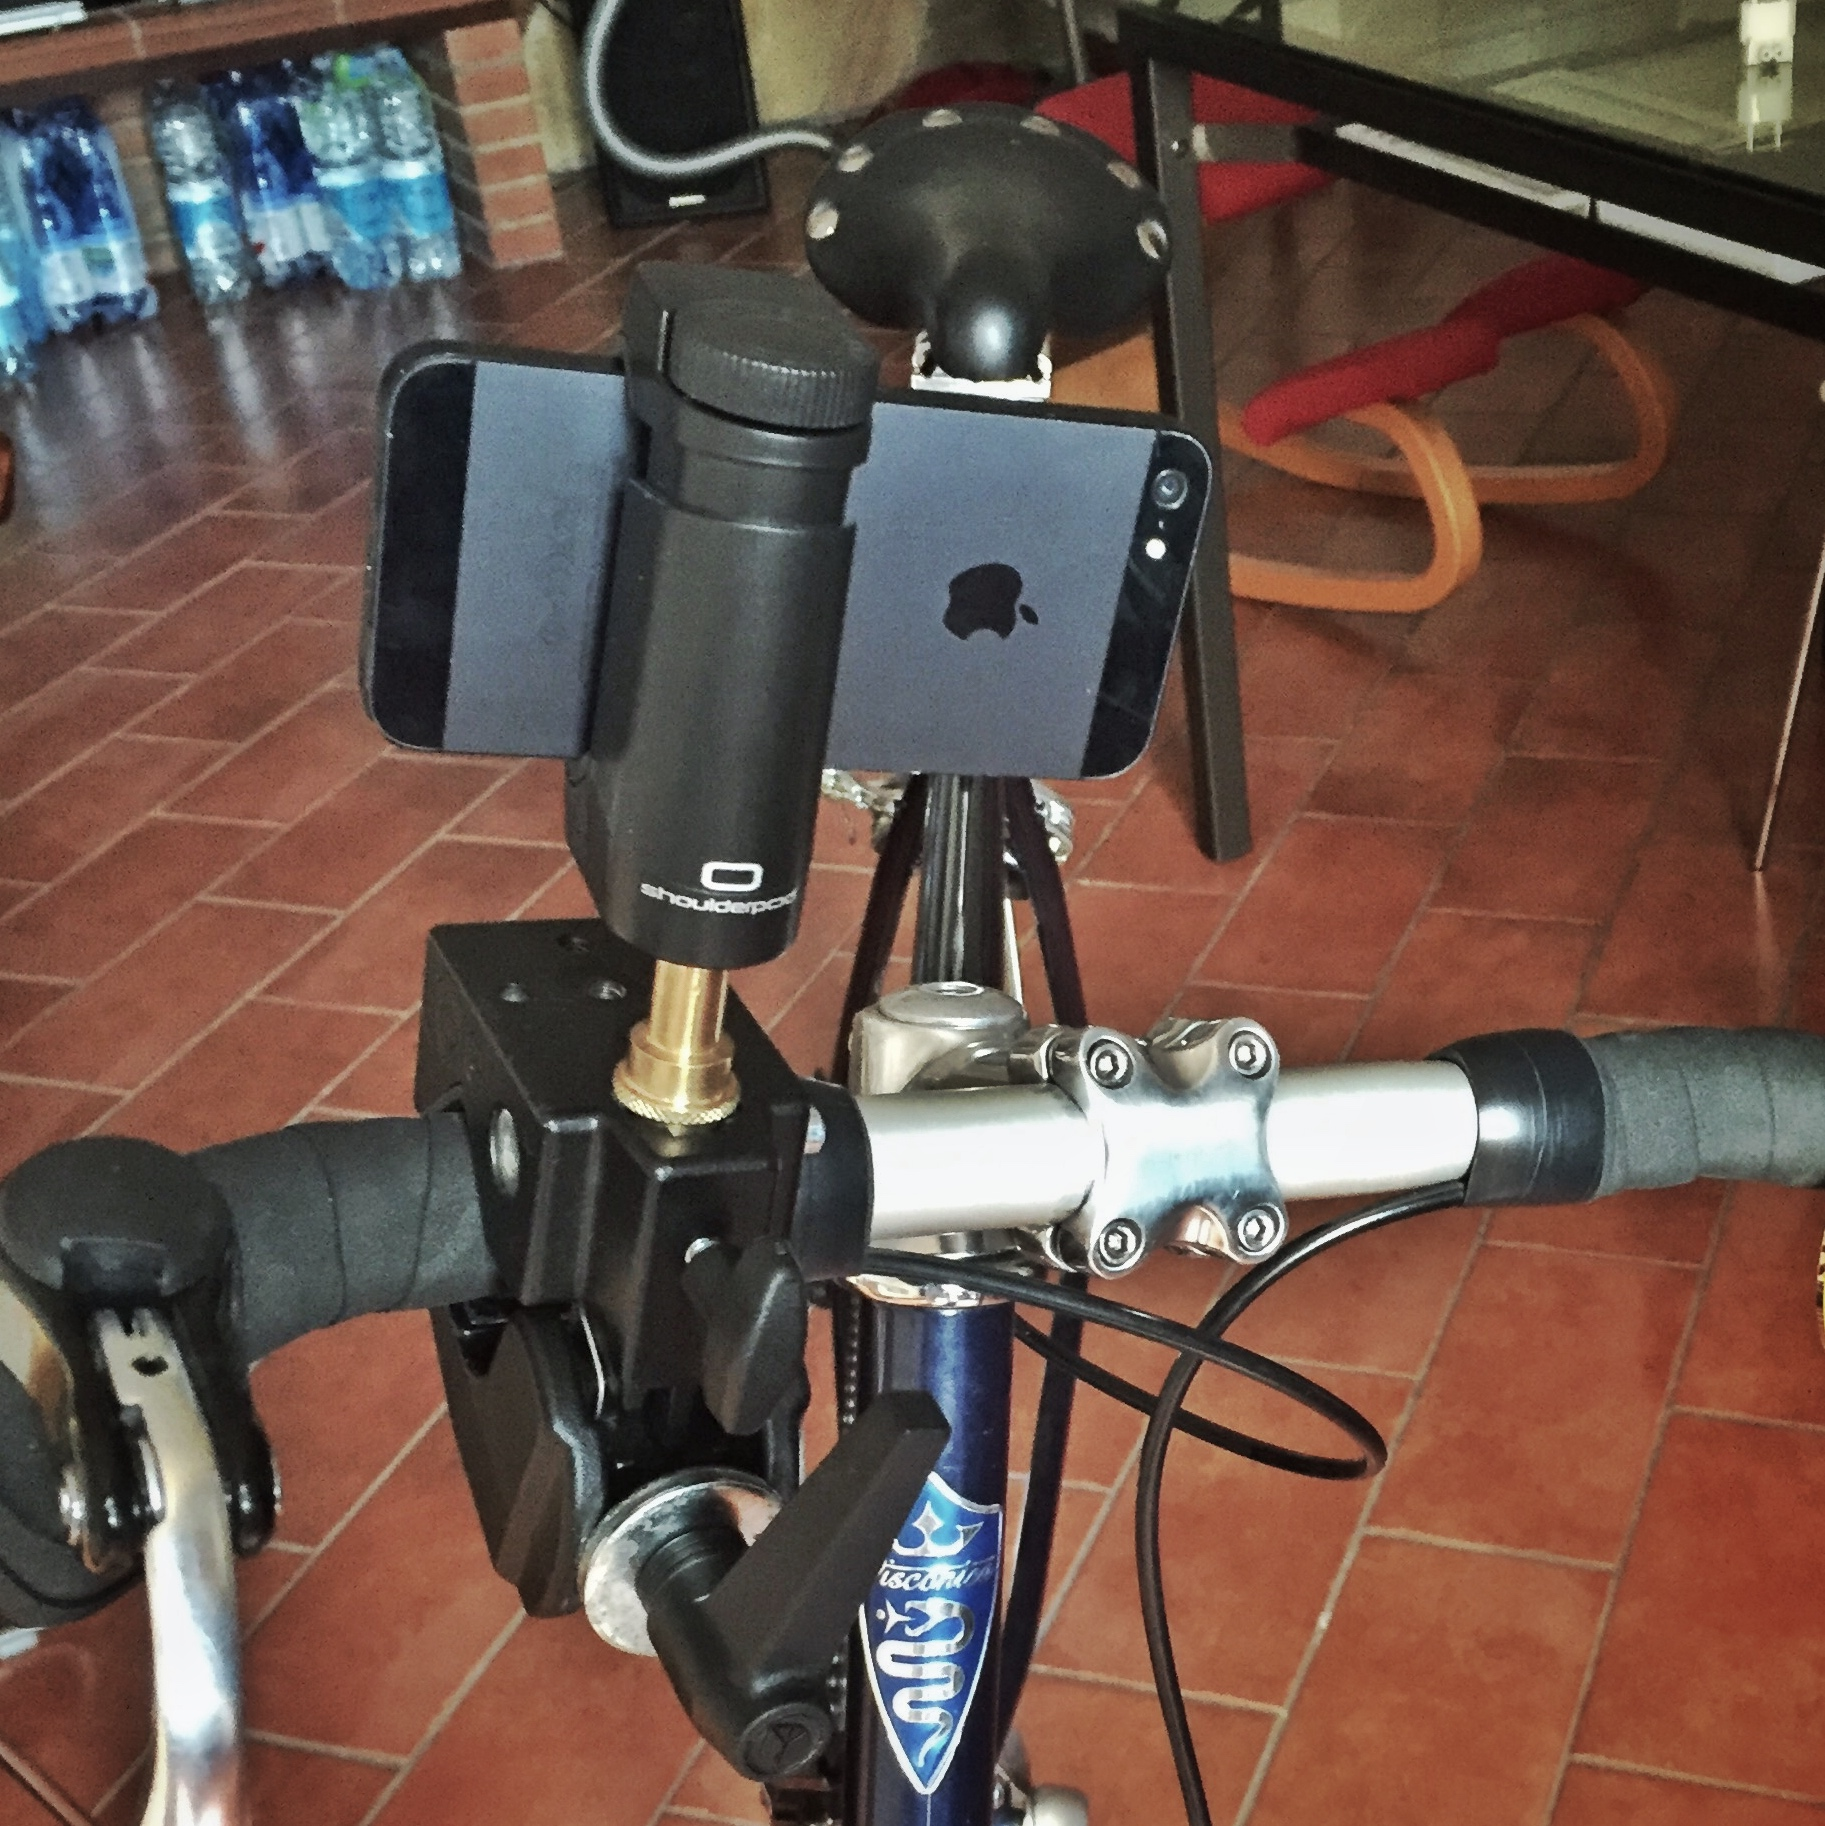 Attaching a smartphone to a bicycle